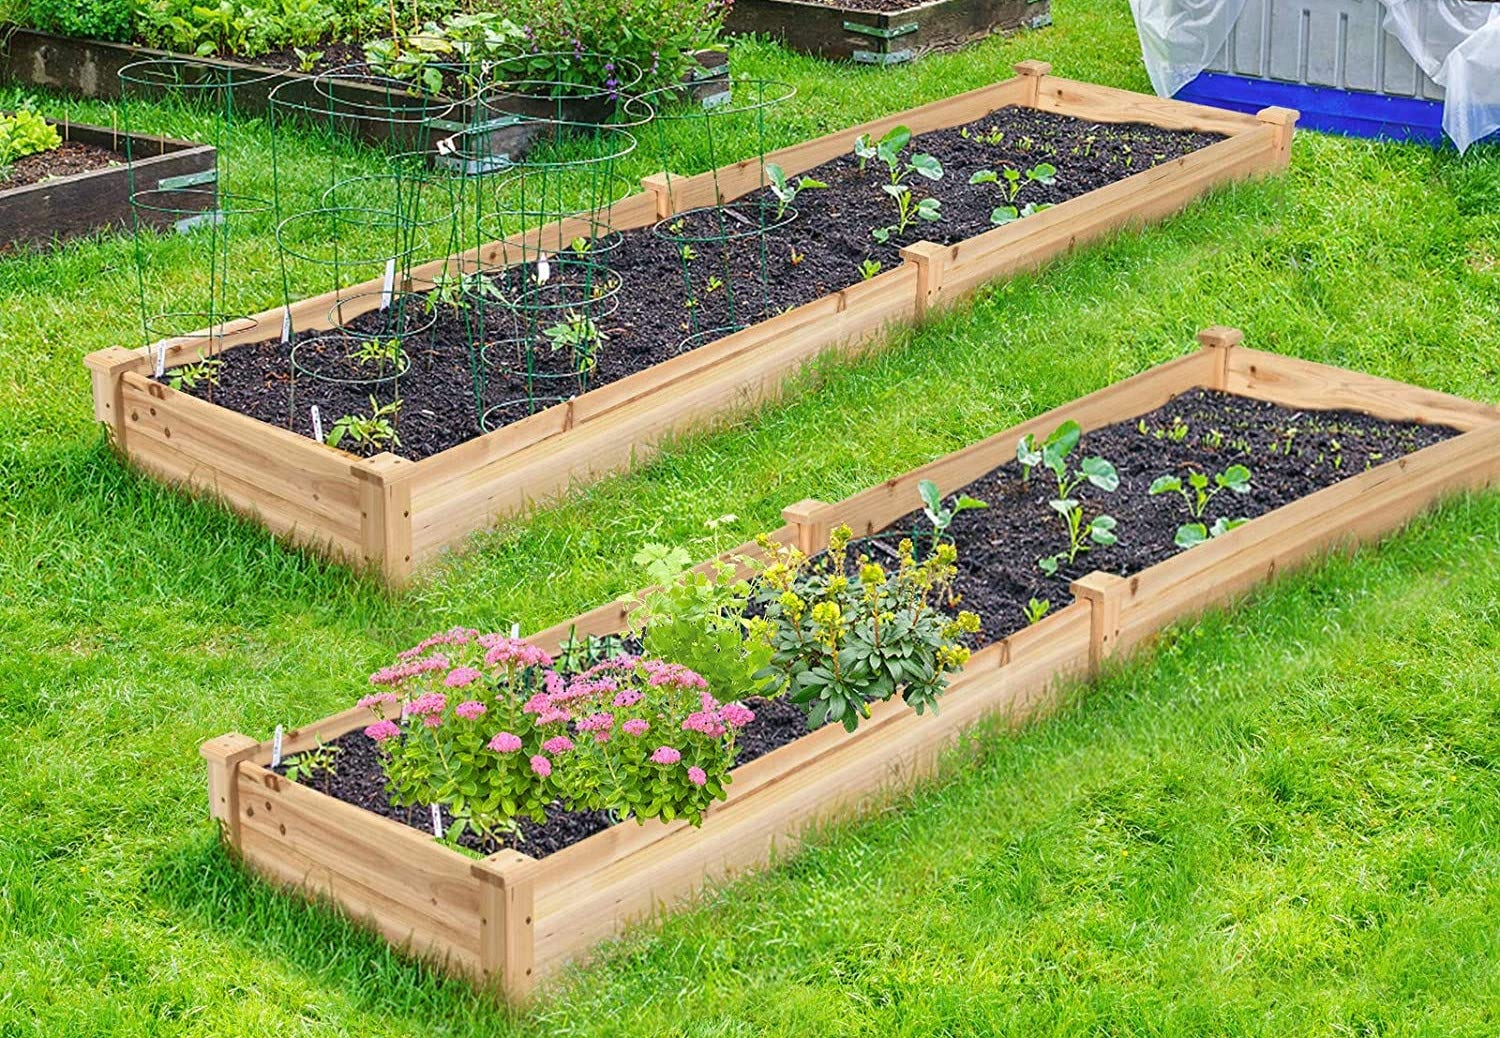 Two rectangular, wood raised garden beds, one with flowering plants, one with green veggies growing